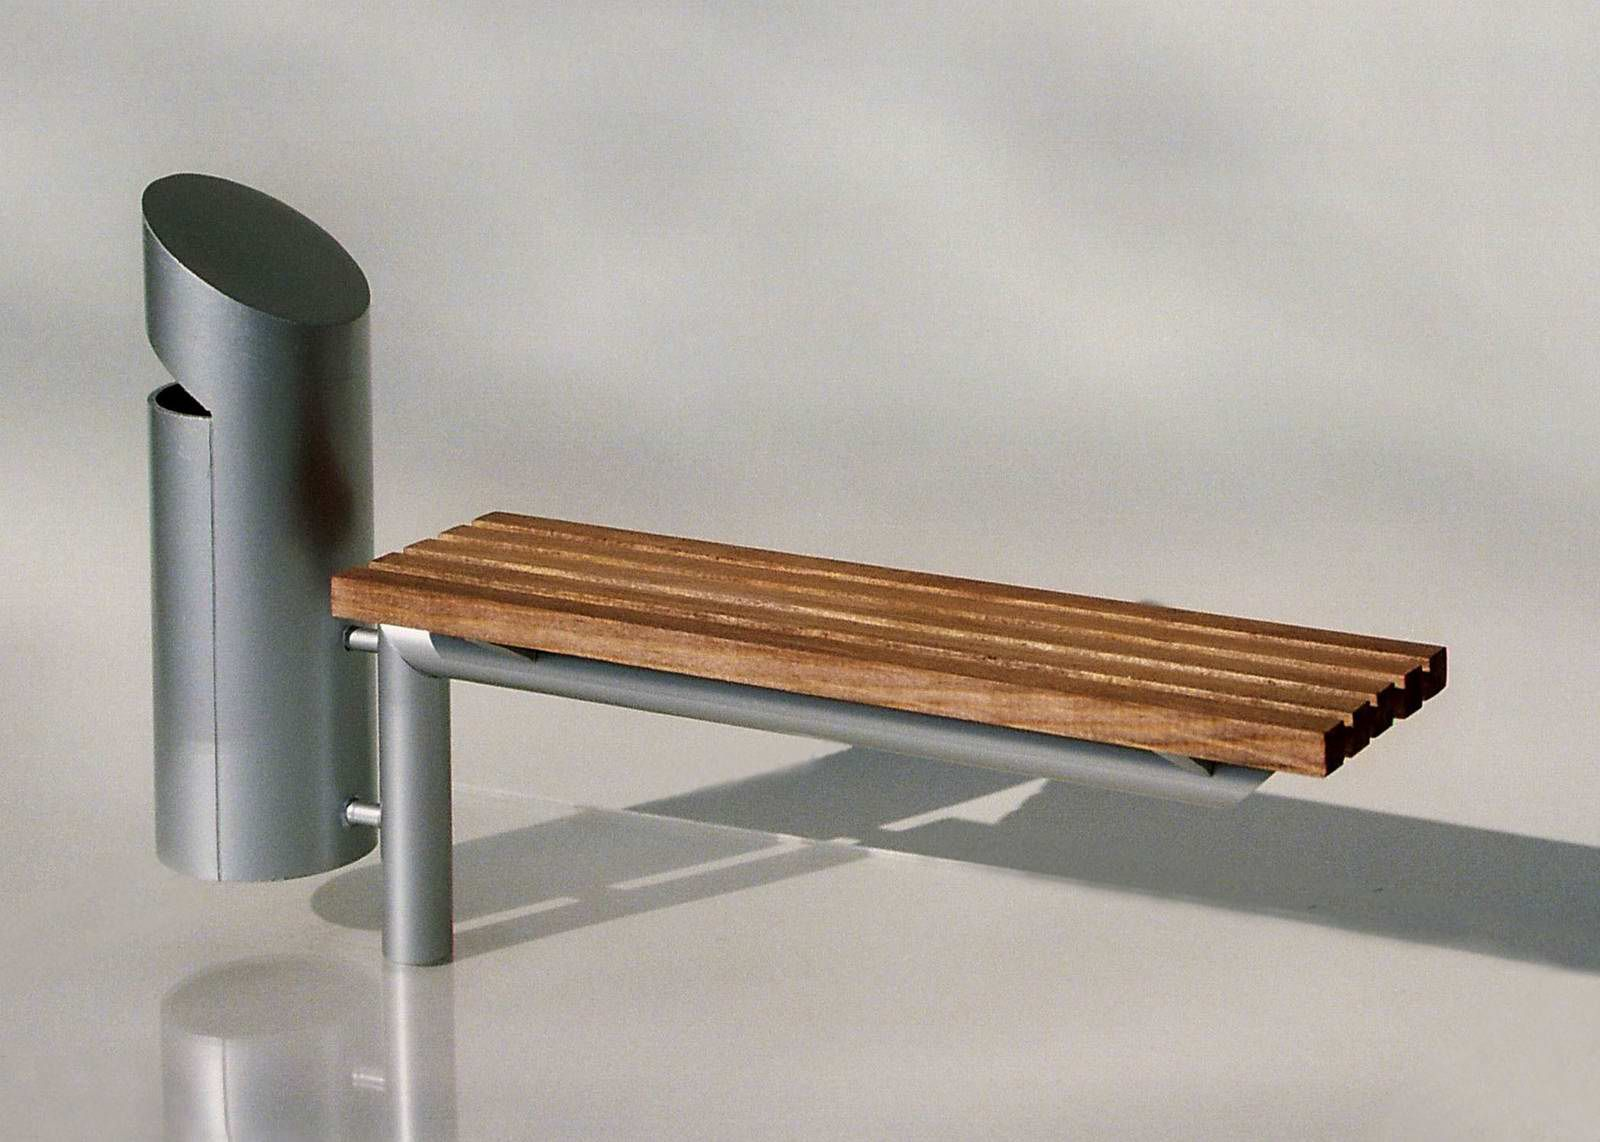 Attirant Industrial Design Furniture | Industrial Design Piotr Pacalowski Urban  Furnitureu2026